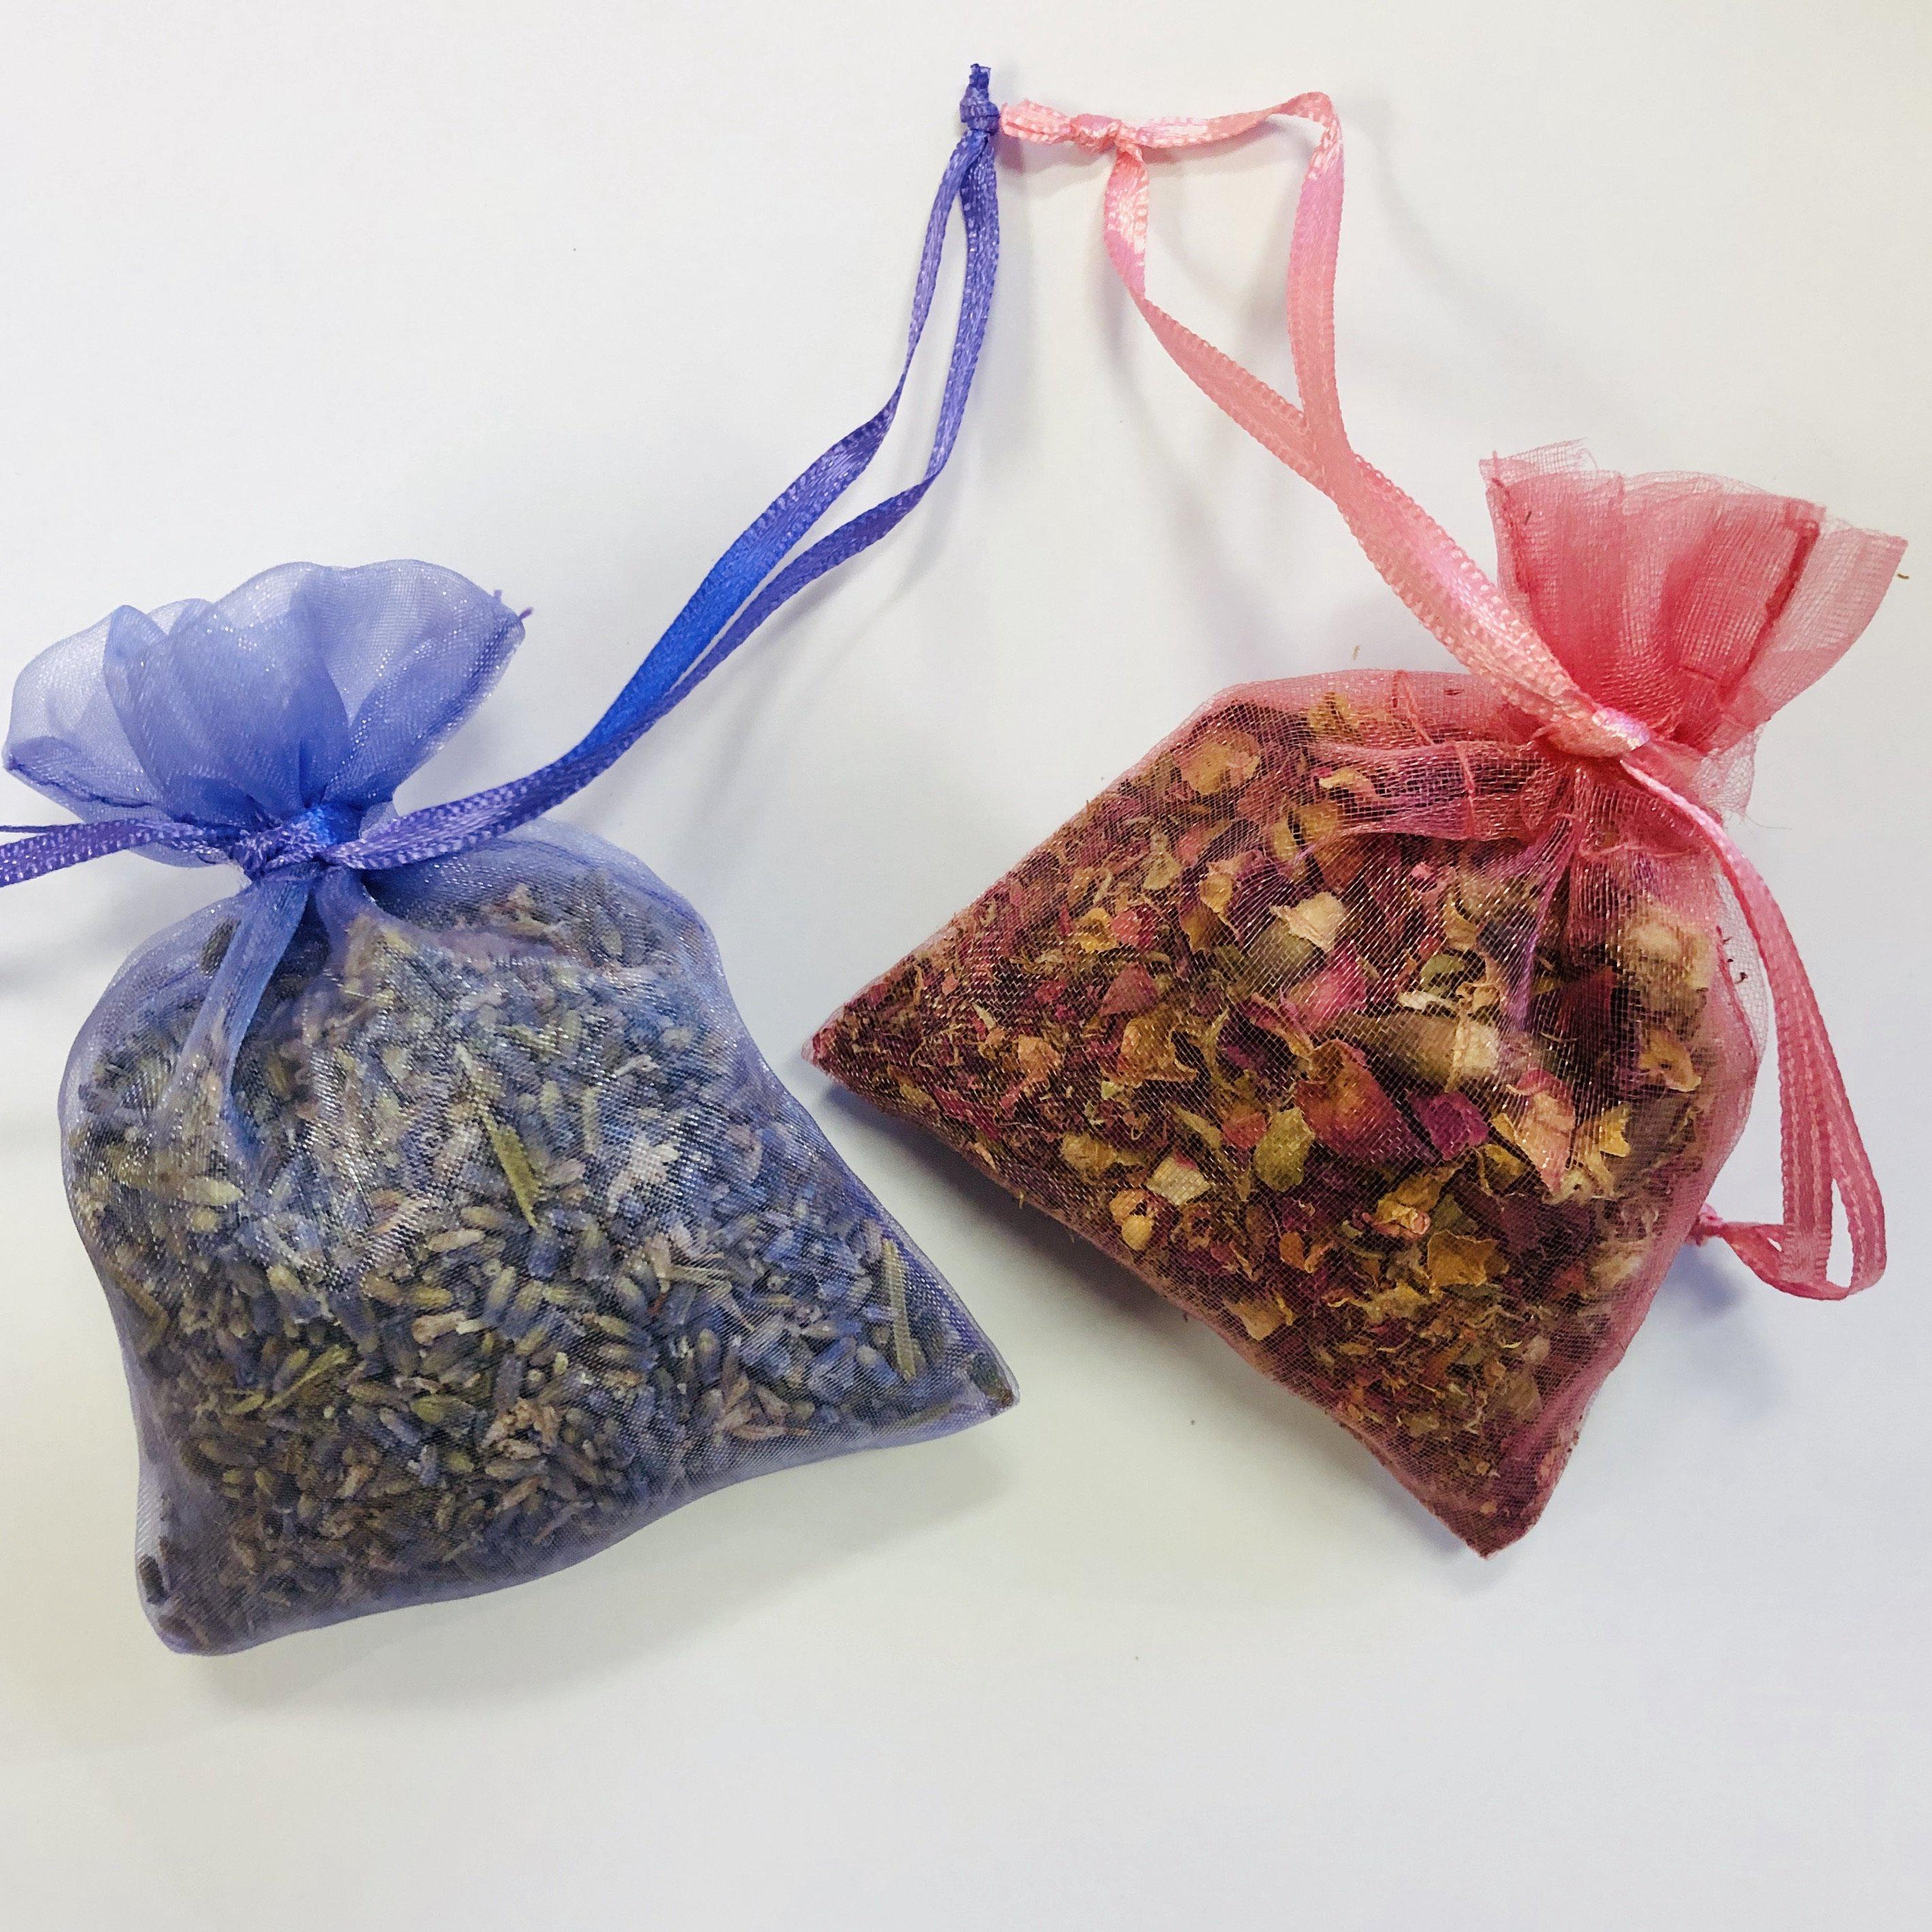 Sachets with organic herbs